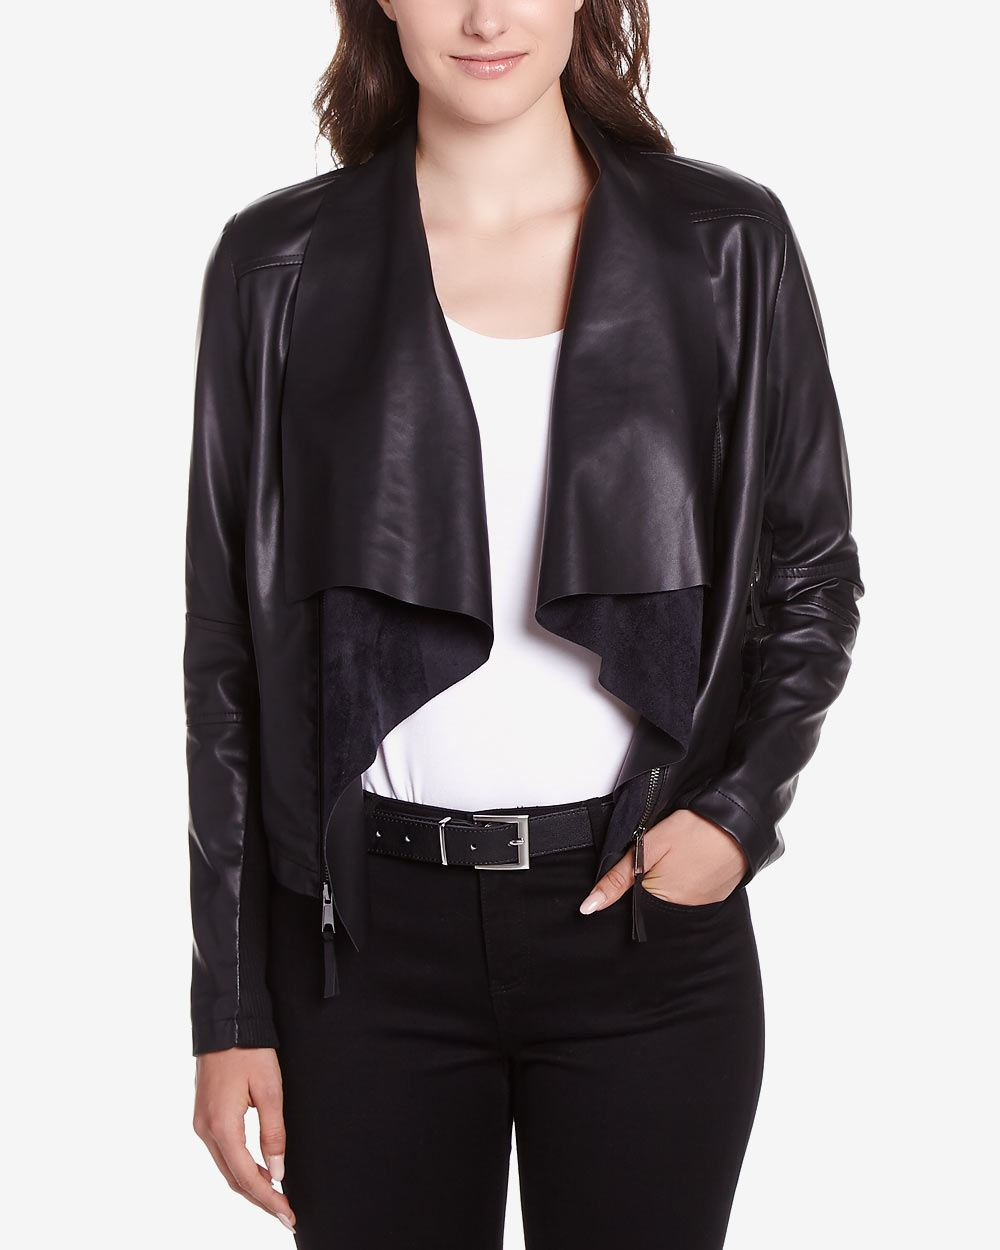 Shop for faux leather jackets online at Target. Free shipping on purchases over $35 and save 5% every day with your Target REDcard.